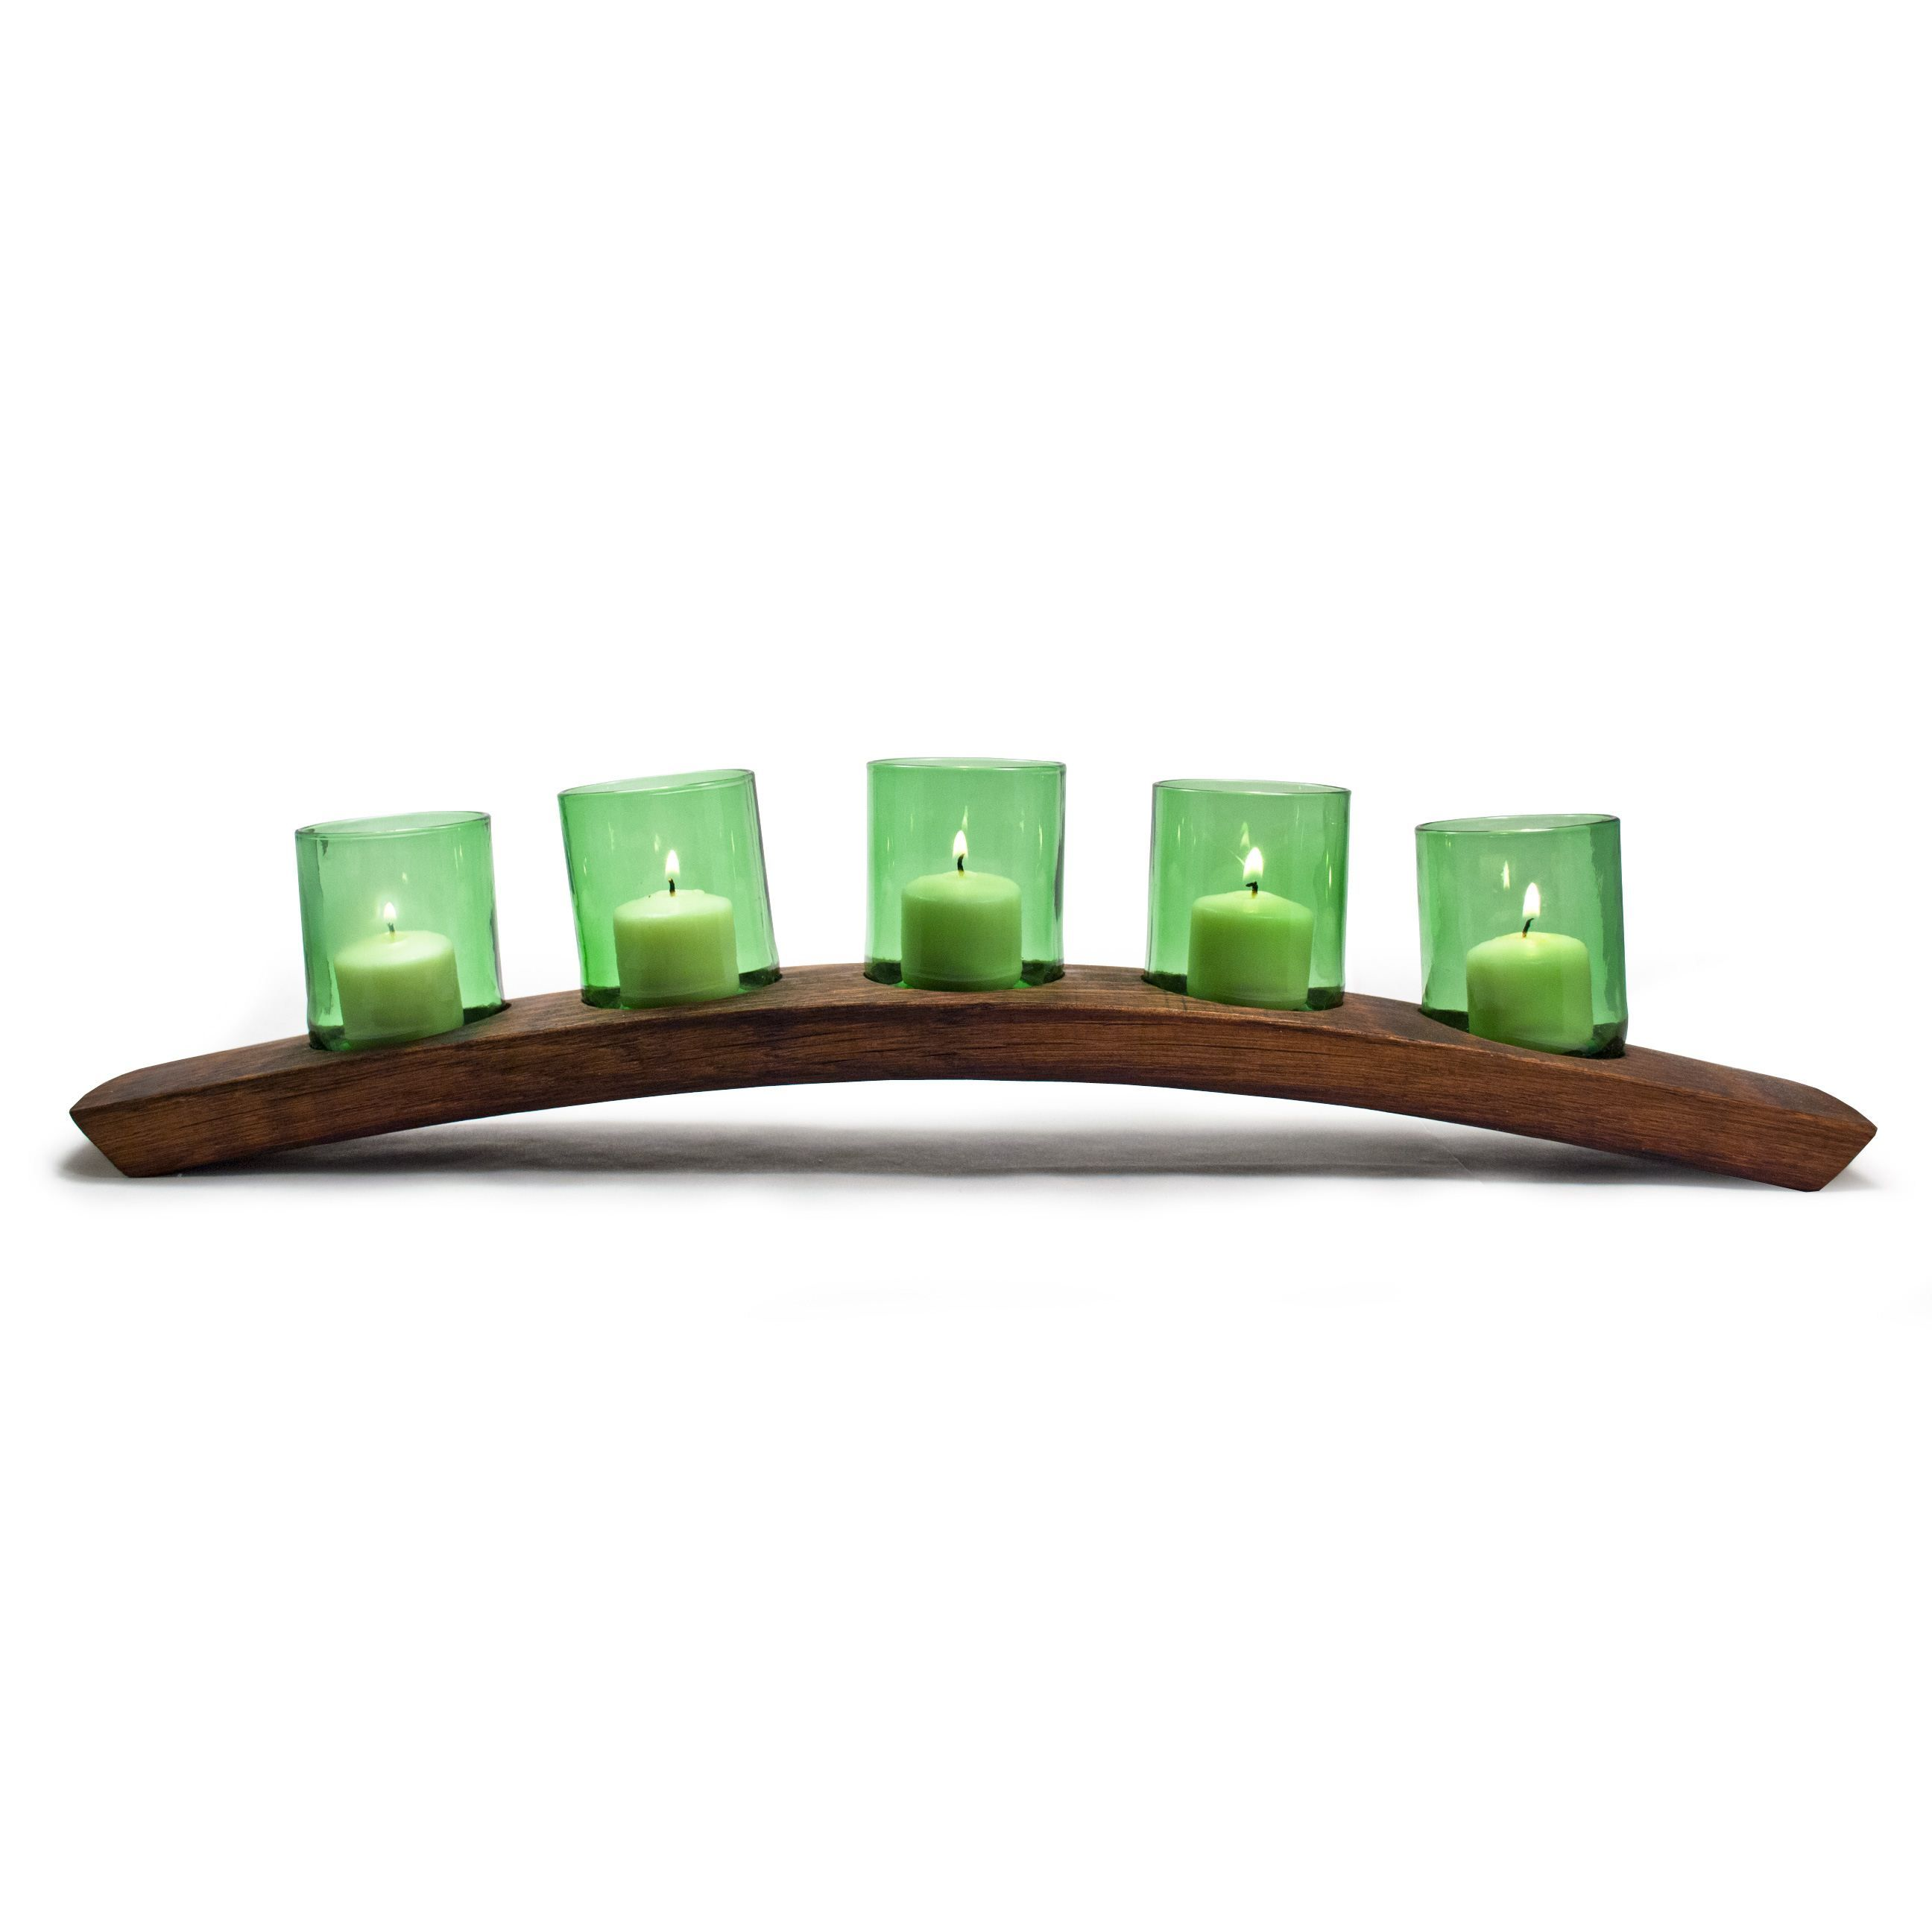 Add light to your mantle or the center of your holiday table with